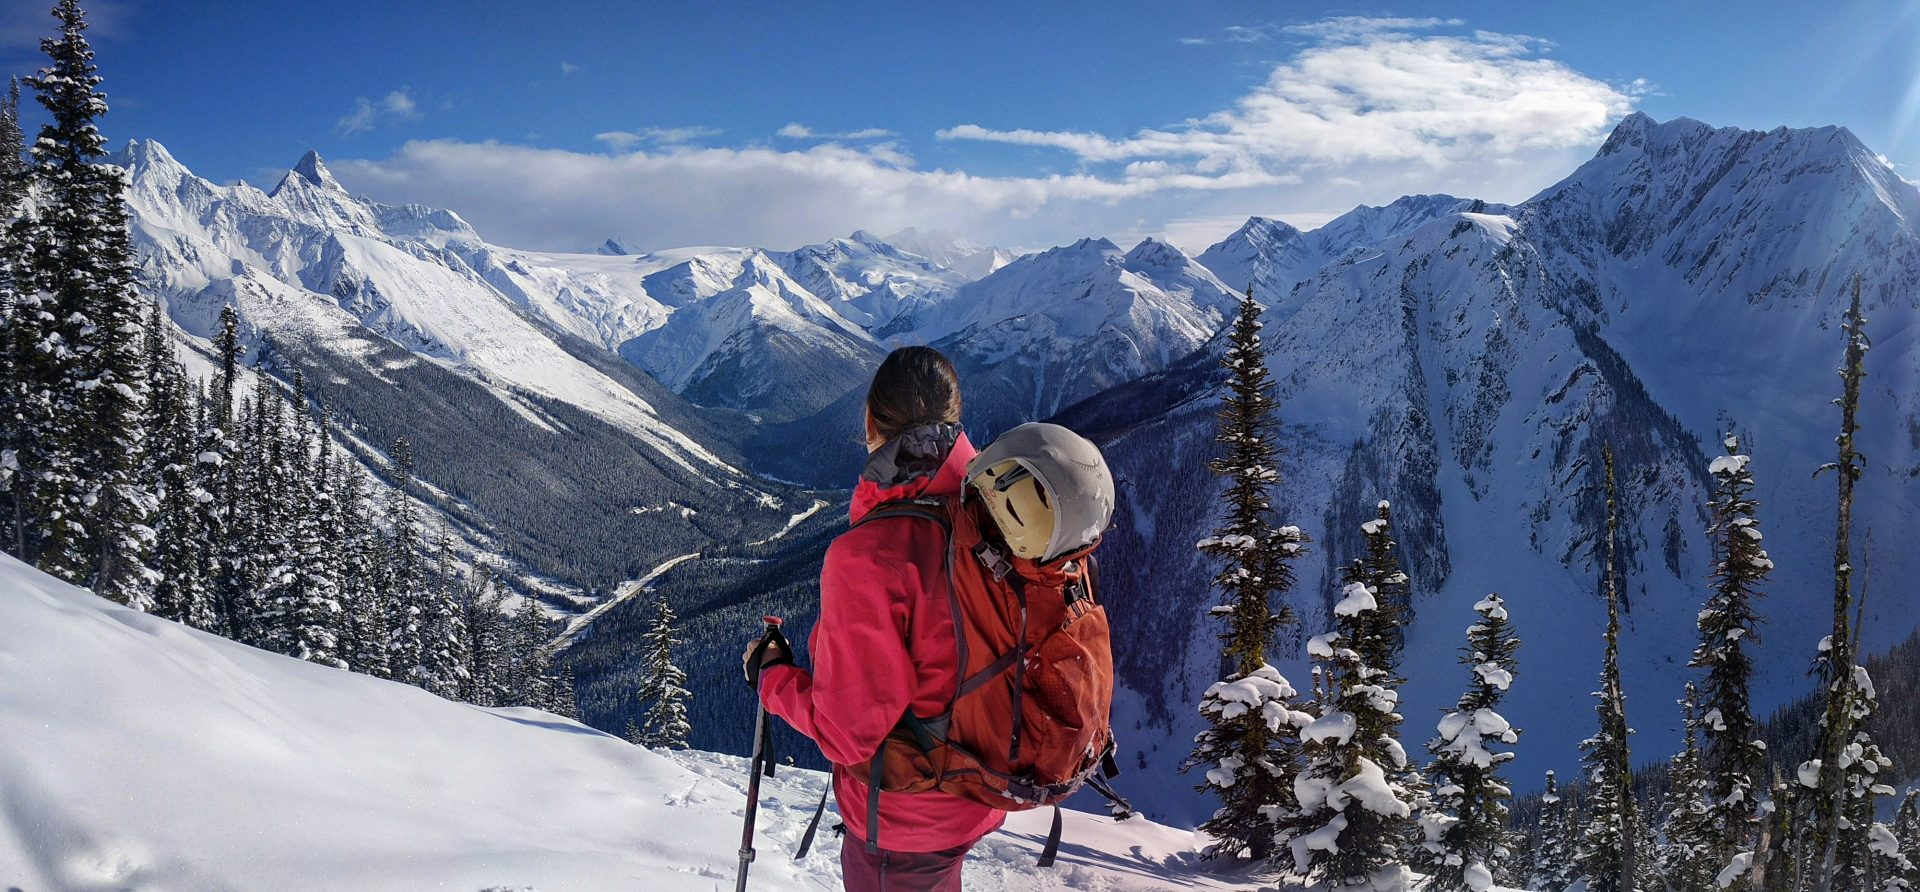 Rogers Pass Backcountry Skiing